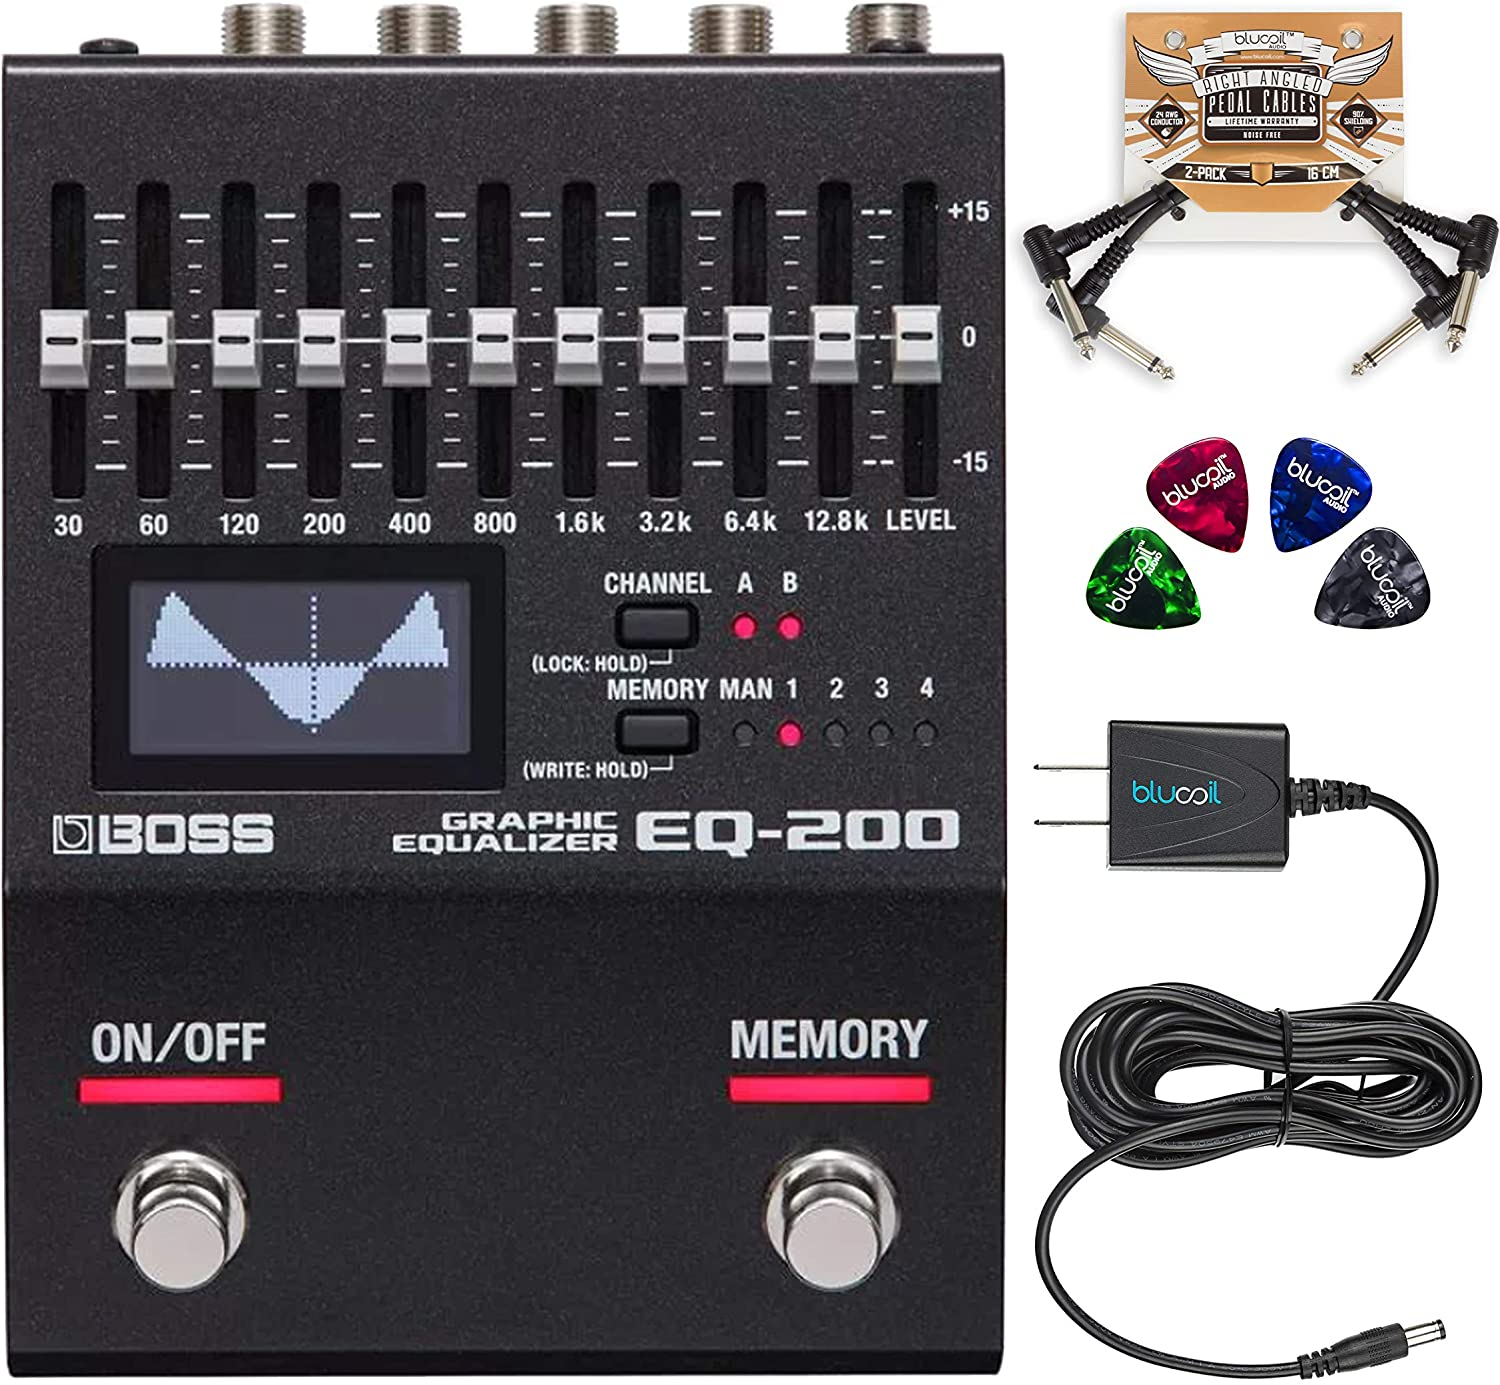 BOSS EQ-200 Graphic Equalizer Pedal for Guitars and Bass Bundle with Blucoil Slim 9V Power Supply AC Adapter, 2-Pack of Pedal Patch Cables, and 4-Pack of Celluloid Guitar Picks